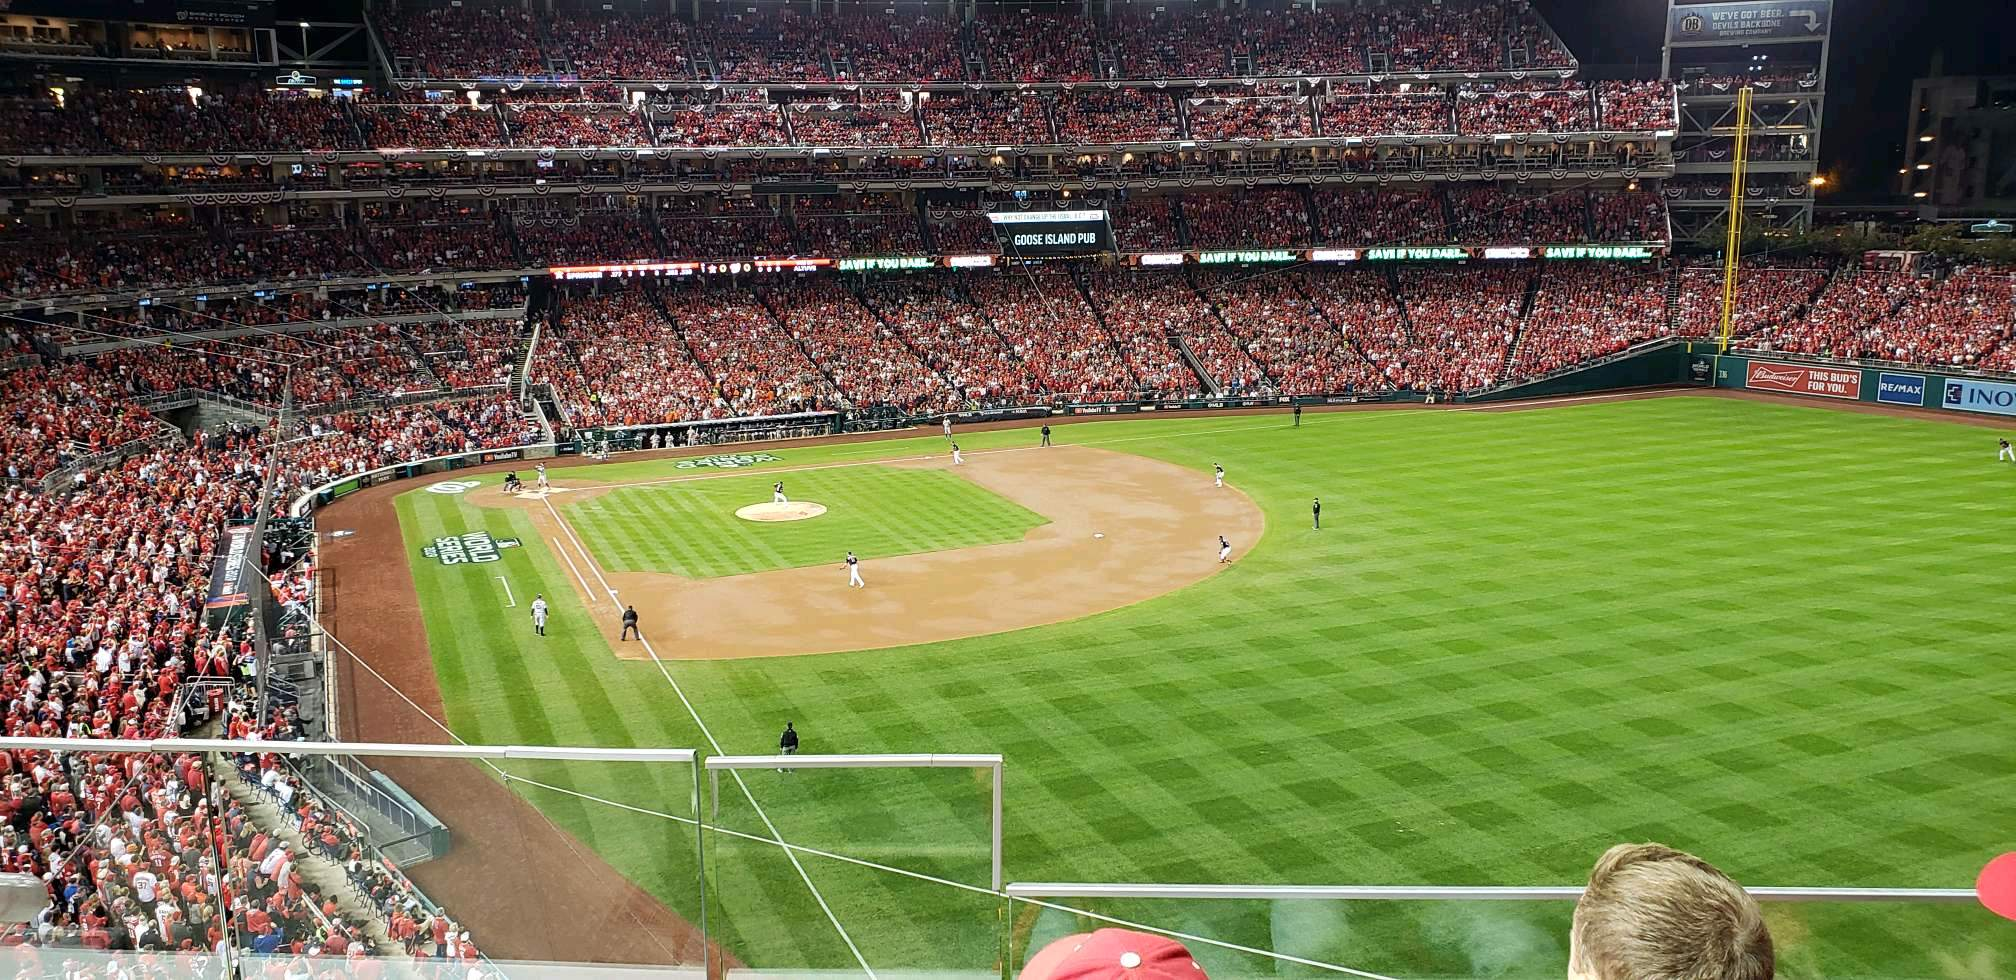 Nationals Park Section 232 Row c Seat 18